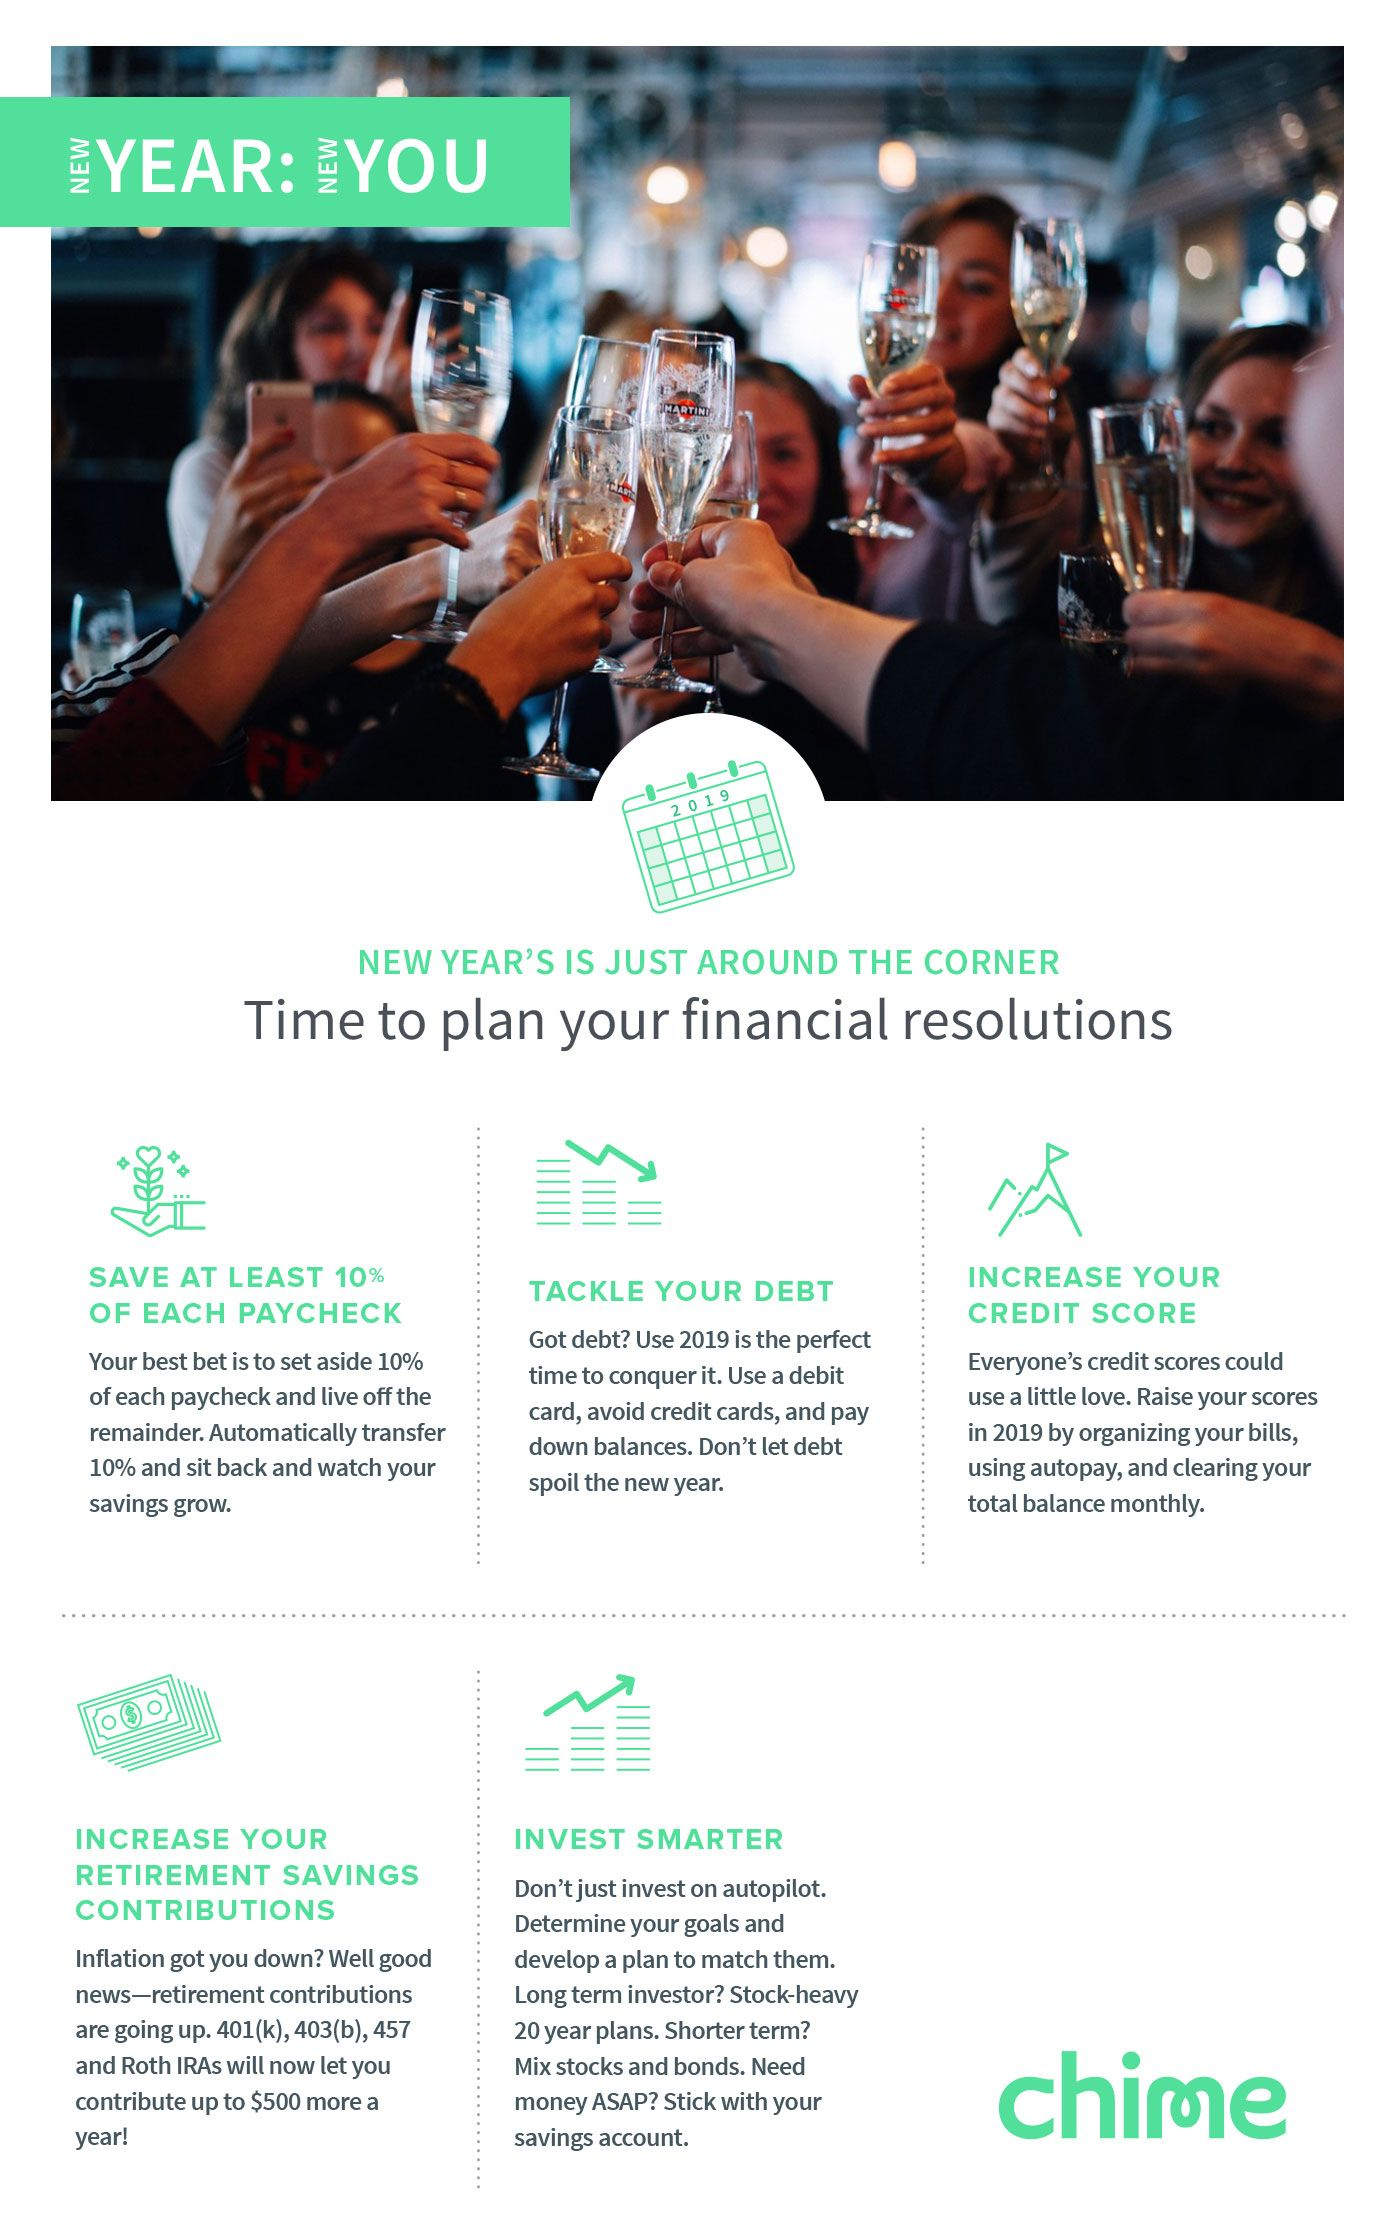 5 Strategies To Be More Financially Healthy In